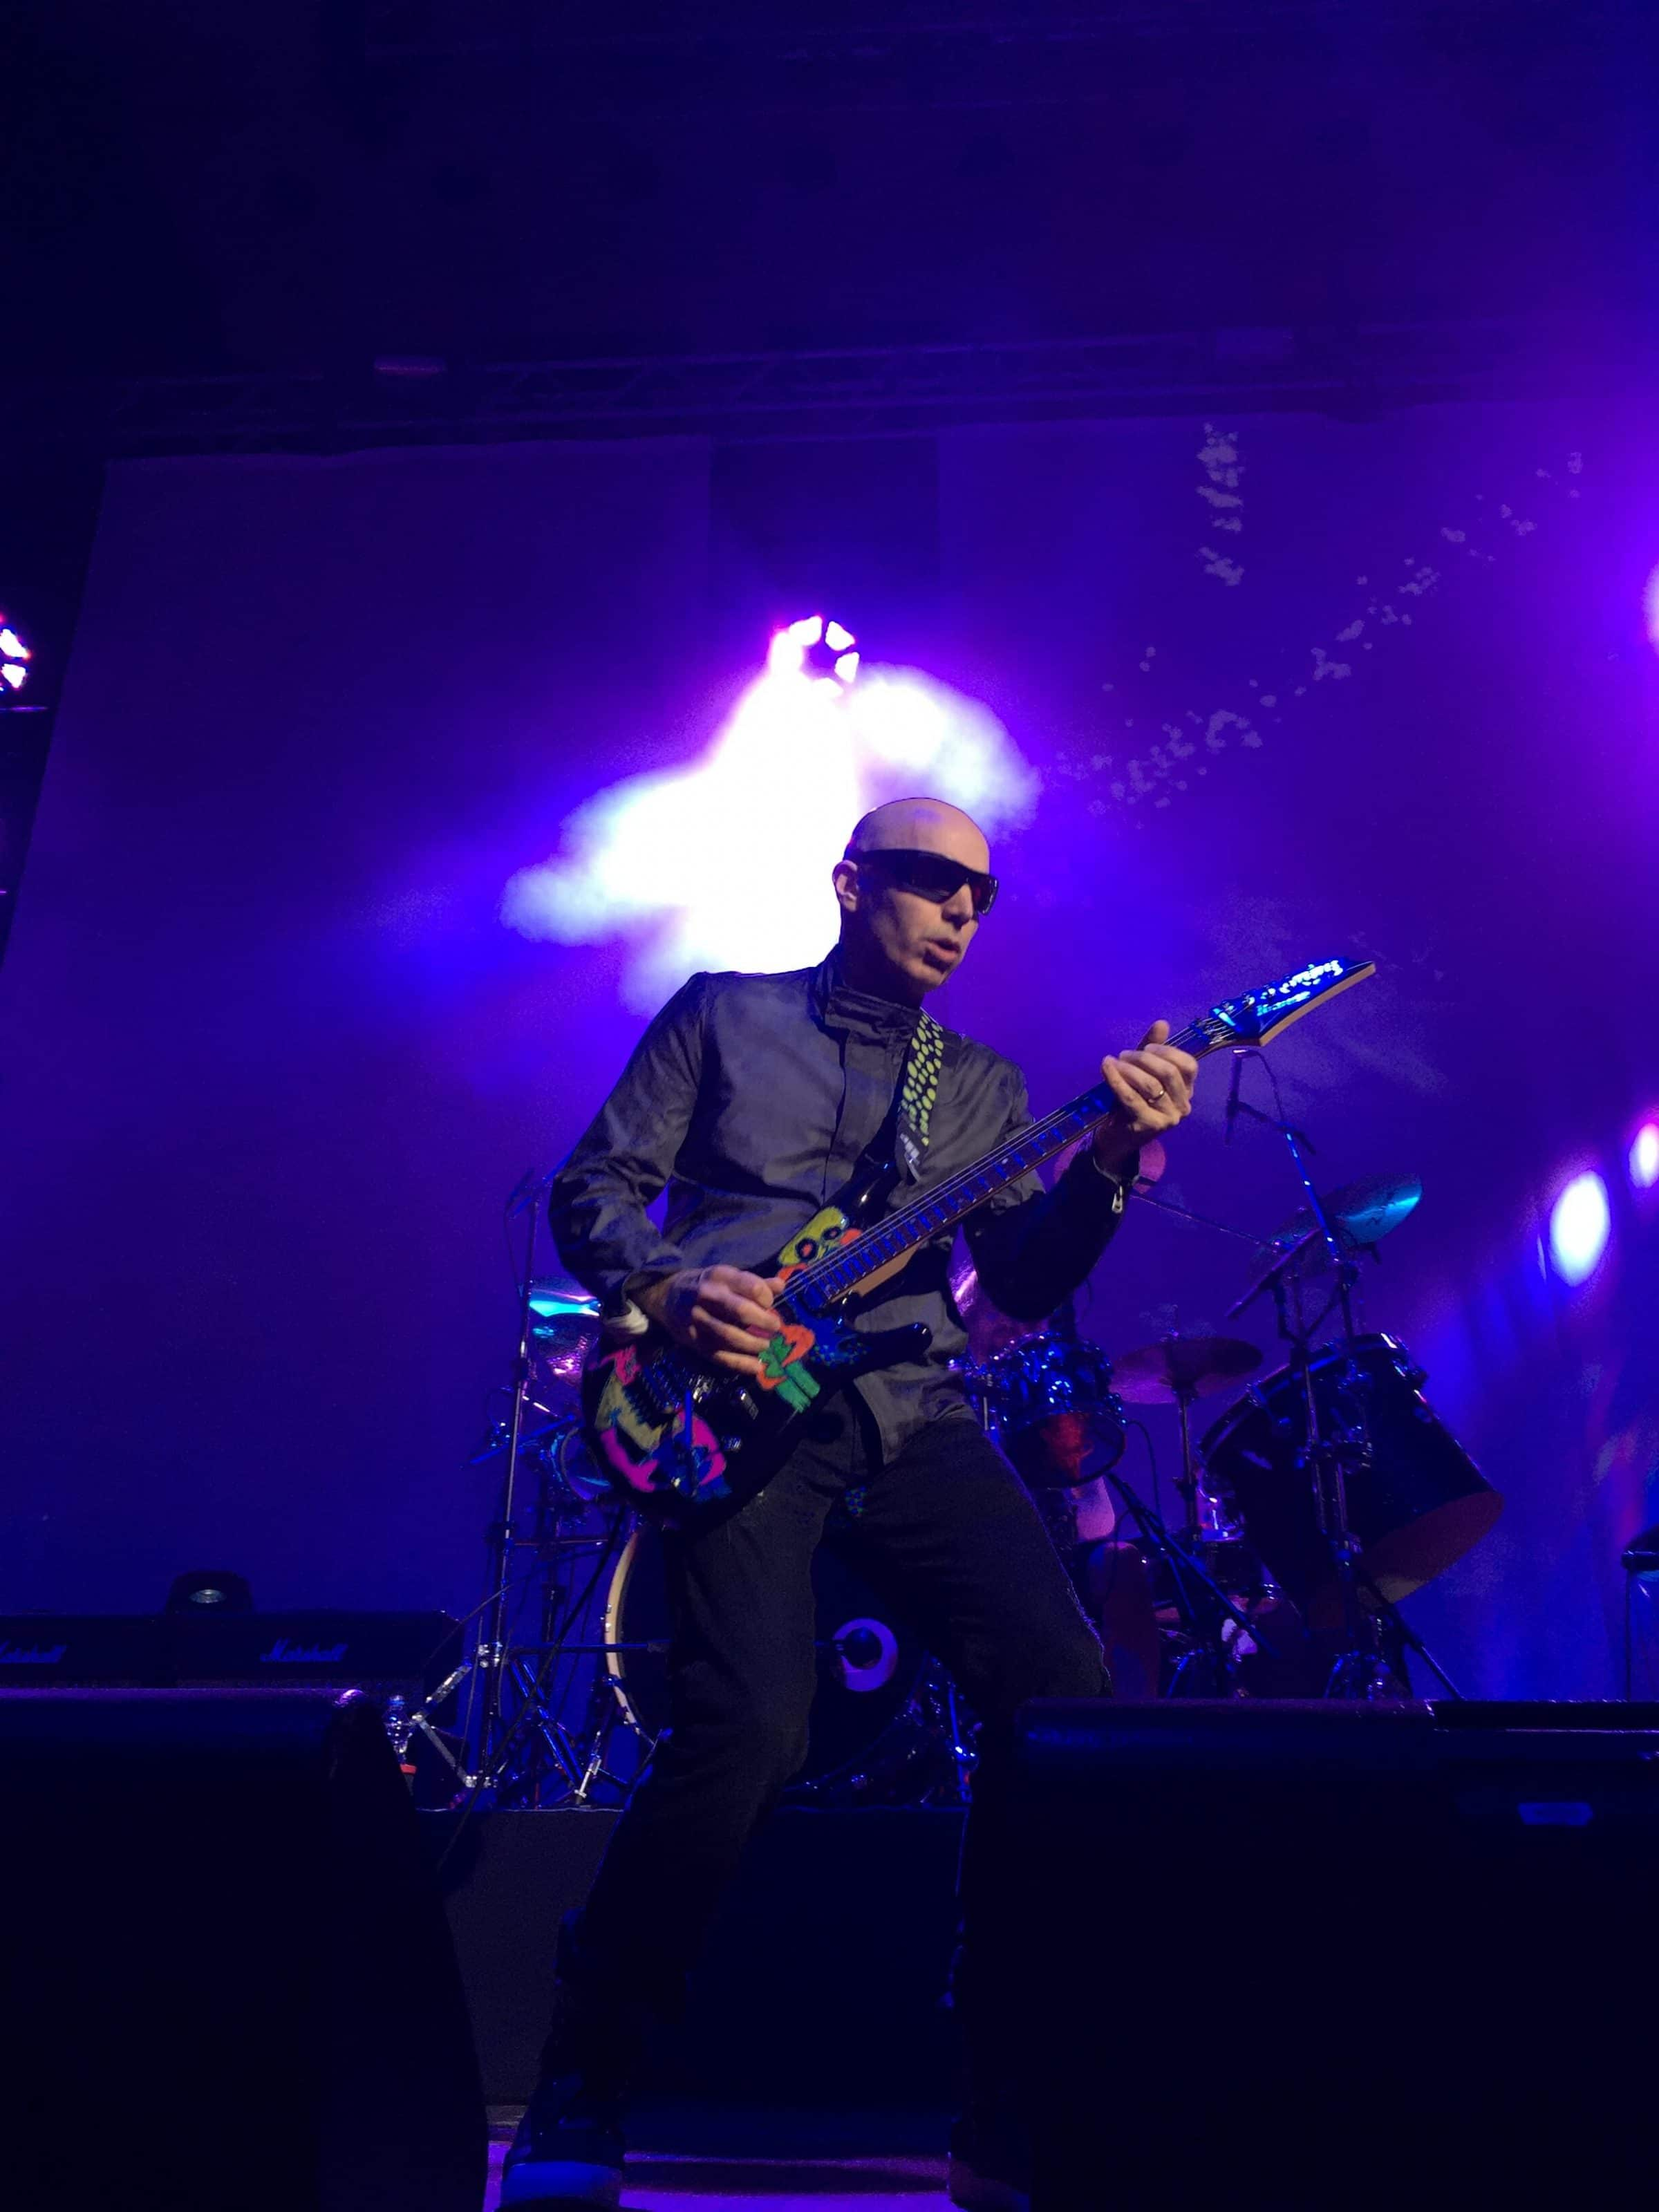 the fan experience joe satriani ibanez js25art 2015 live